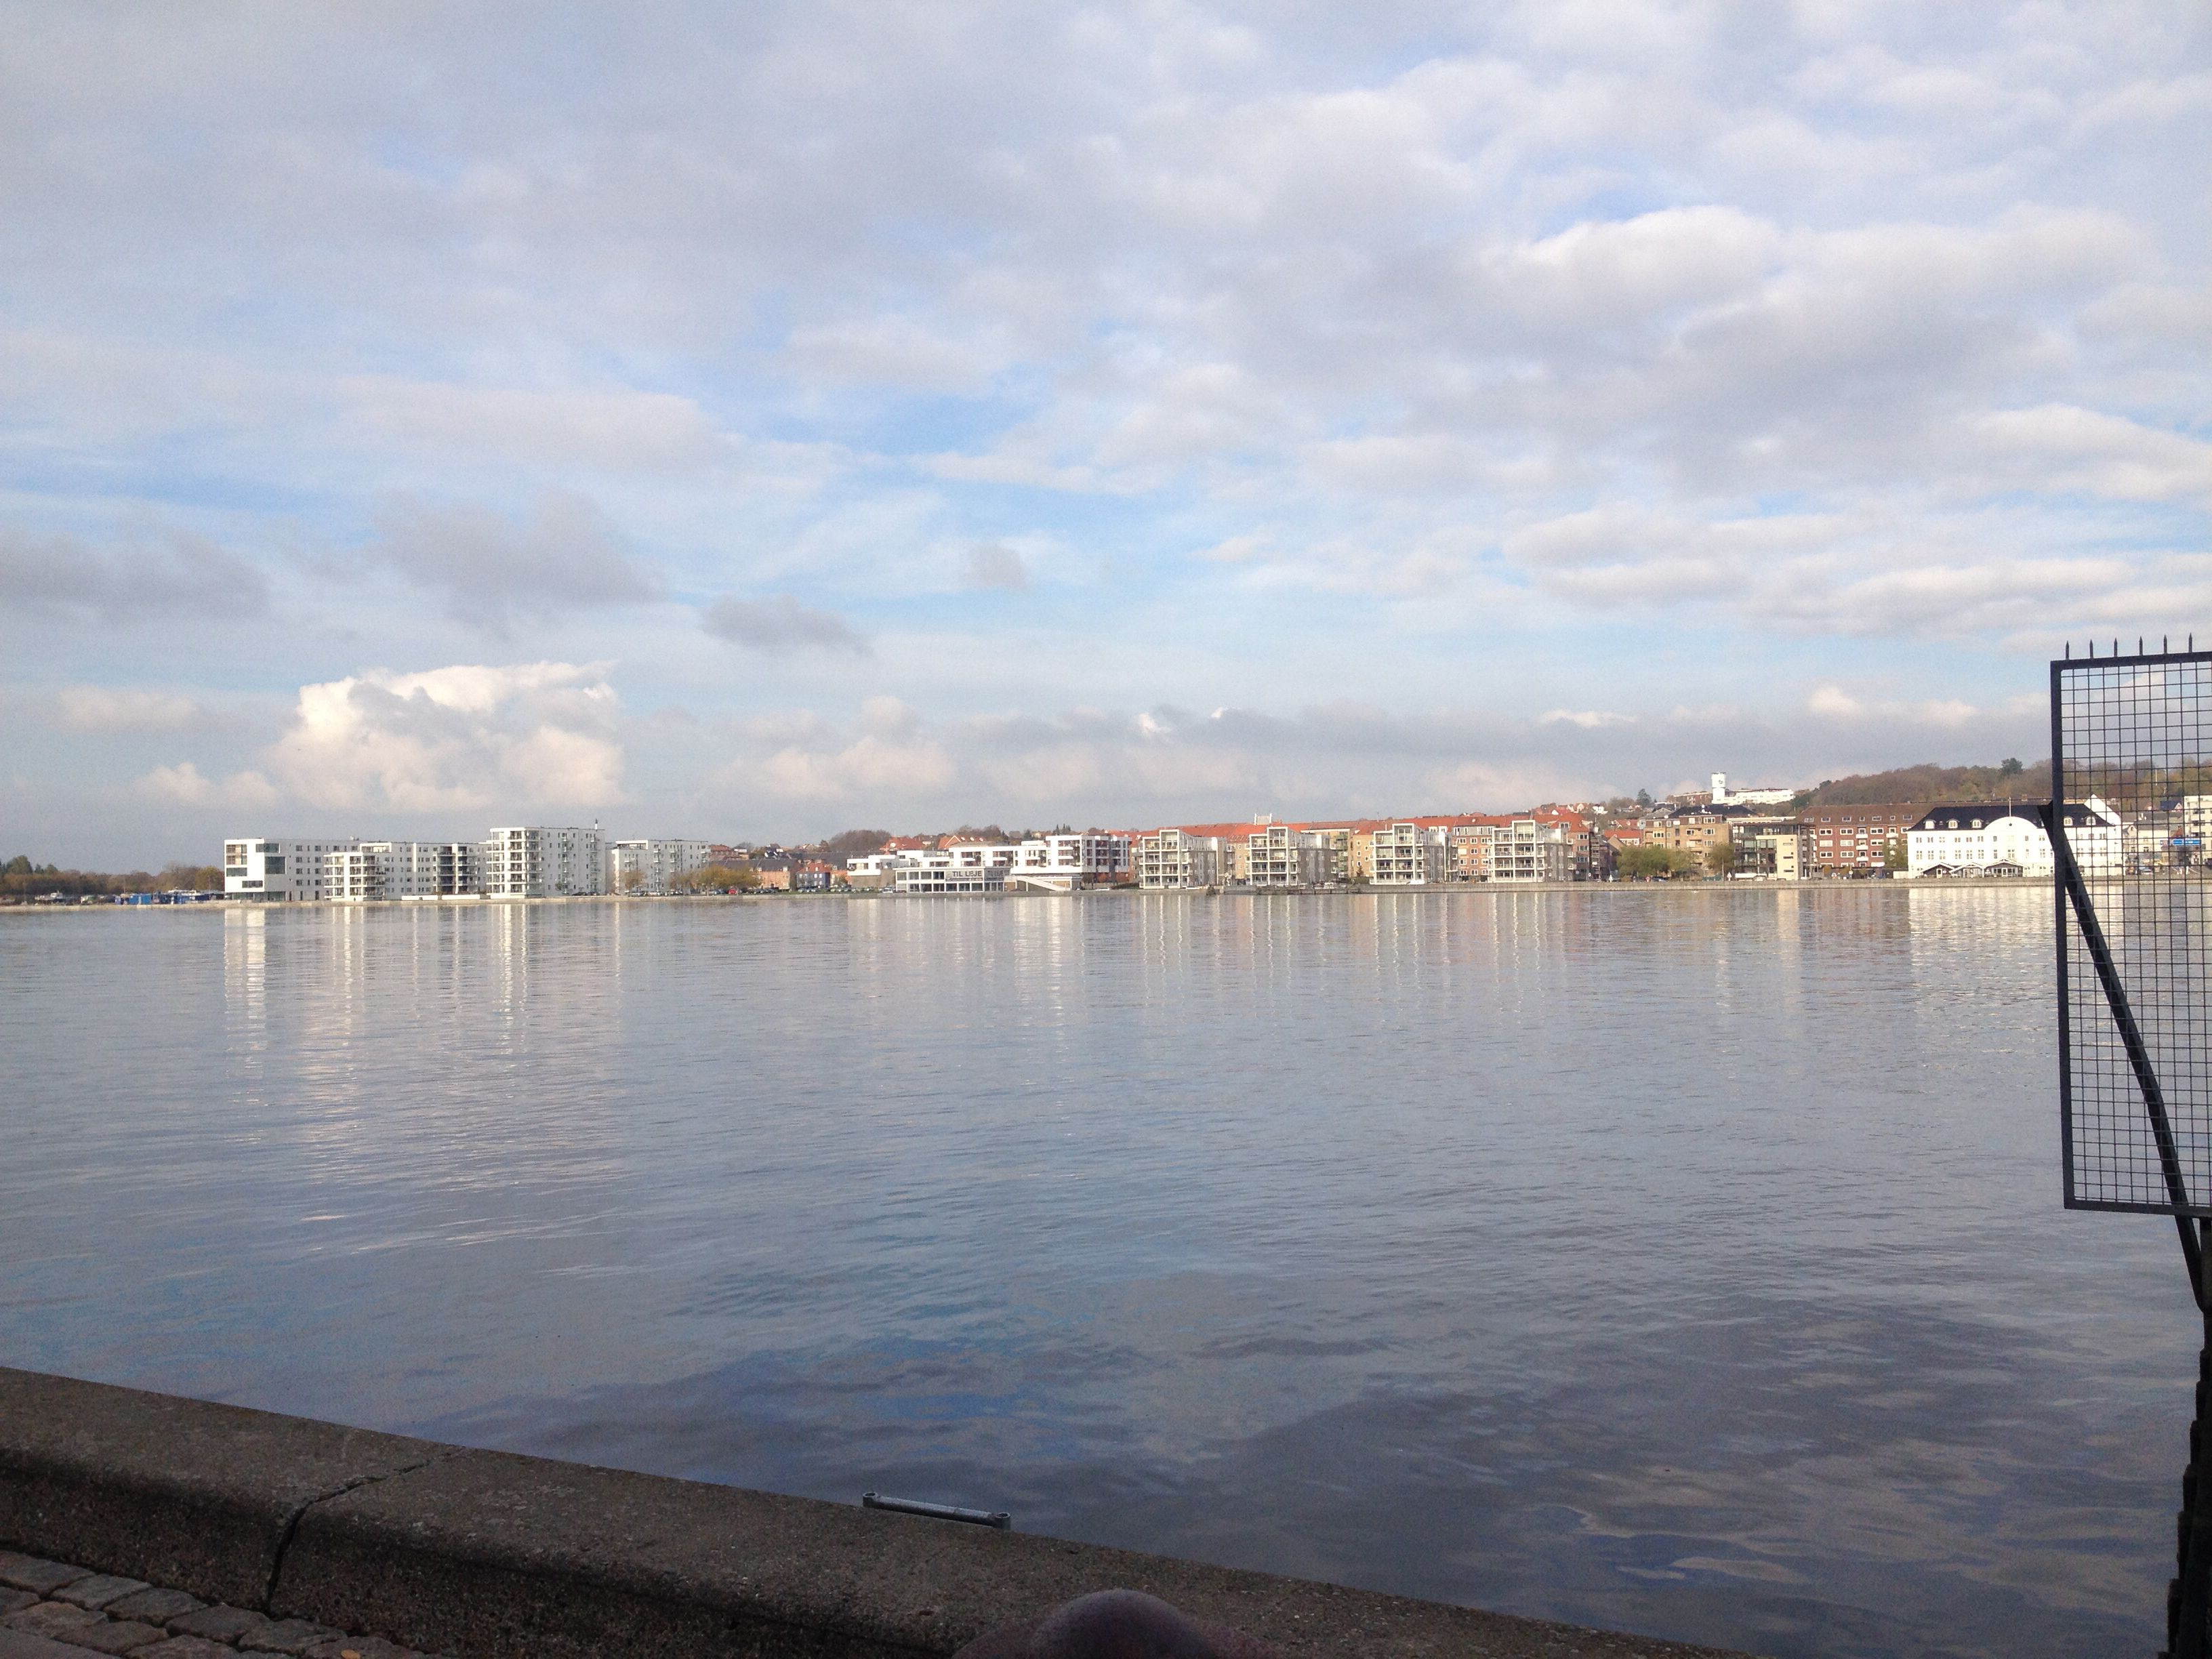 The beautiful water front in Aalborg